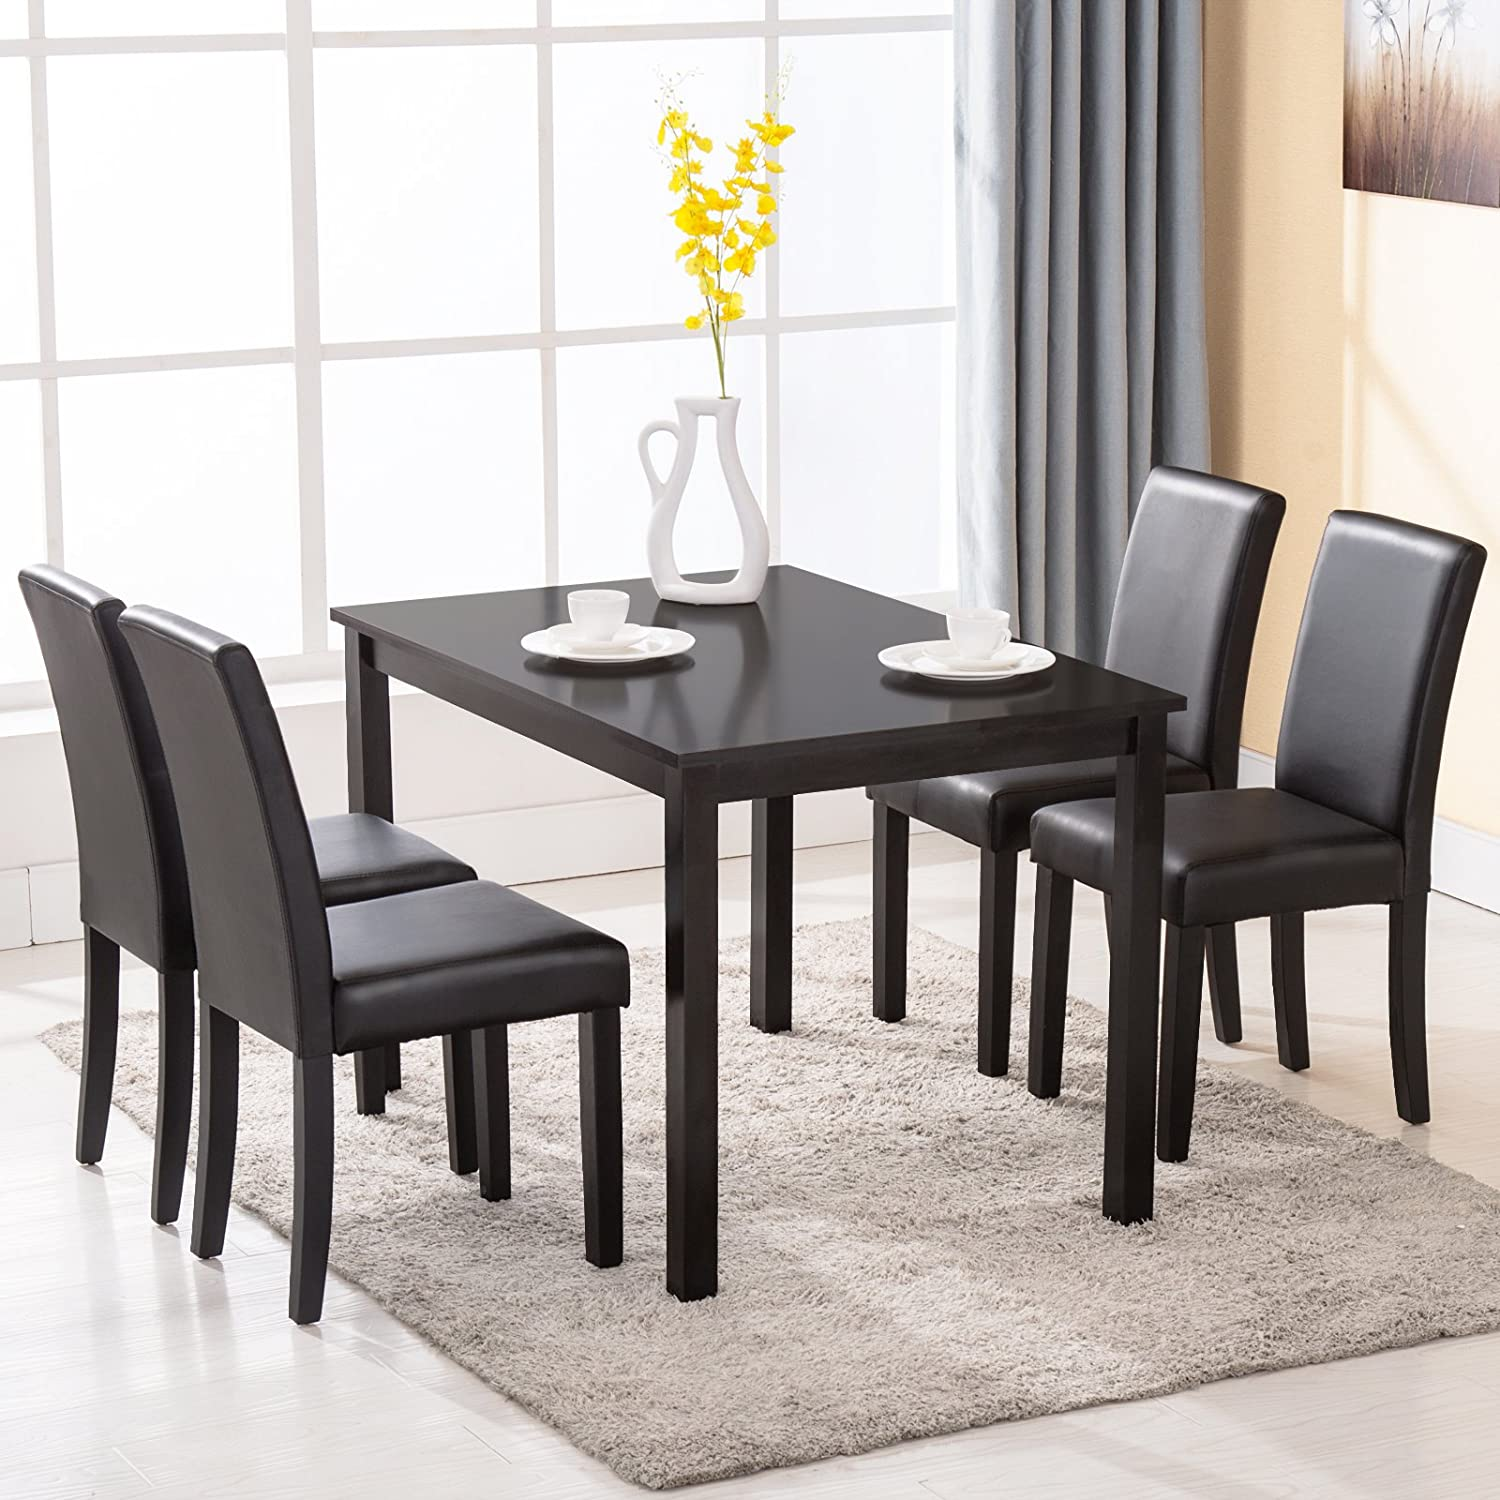 Amazon 4 Family 5 Piece Dining Table Set 4 Chairs Wood